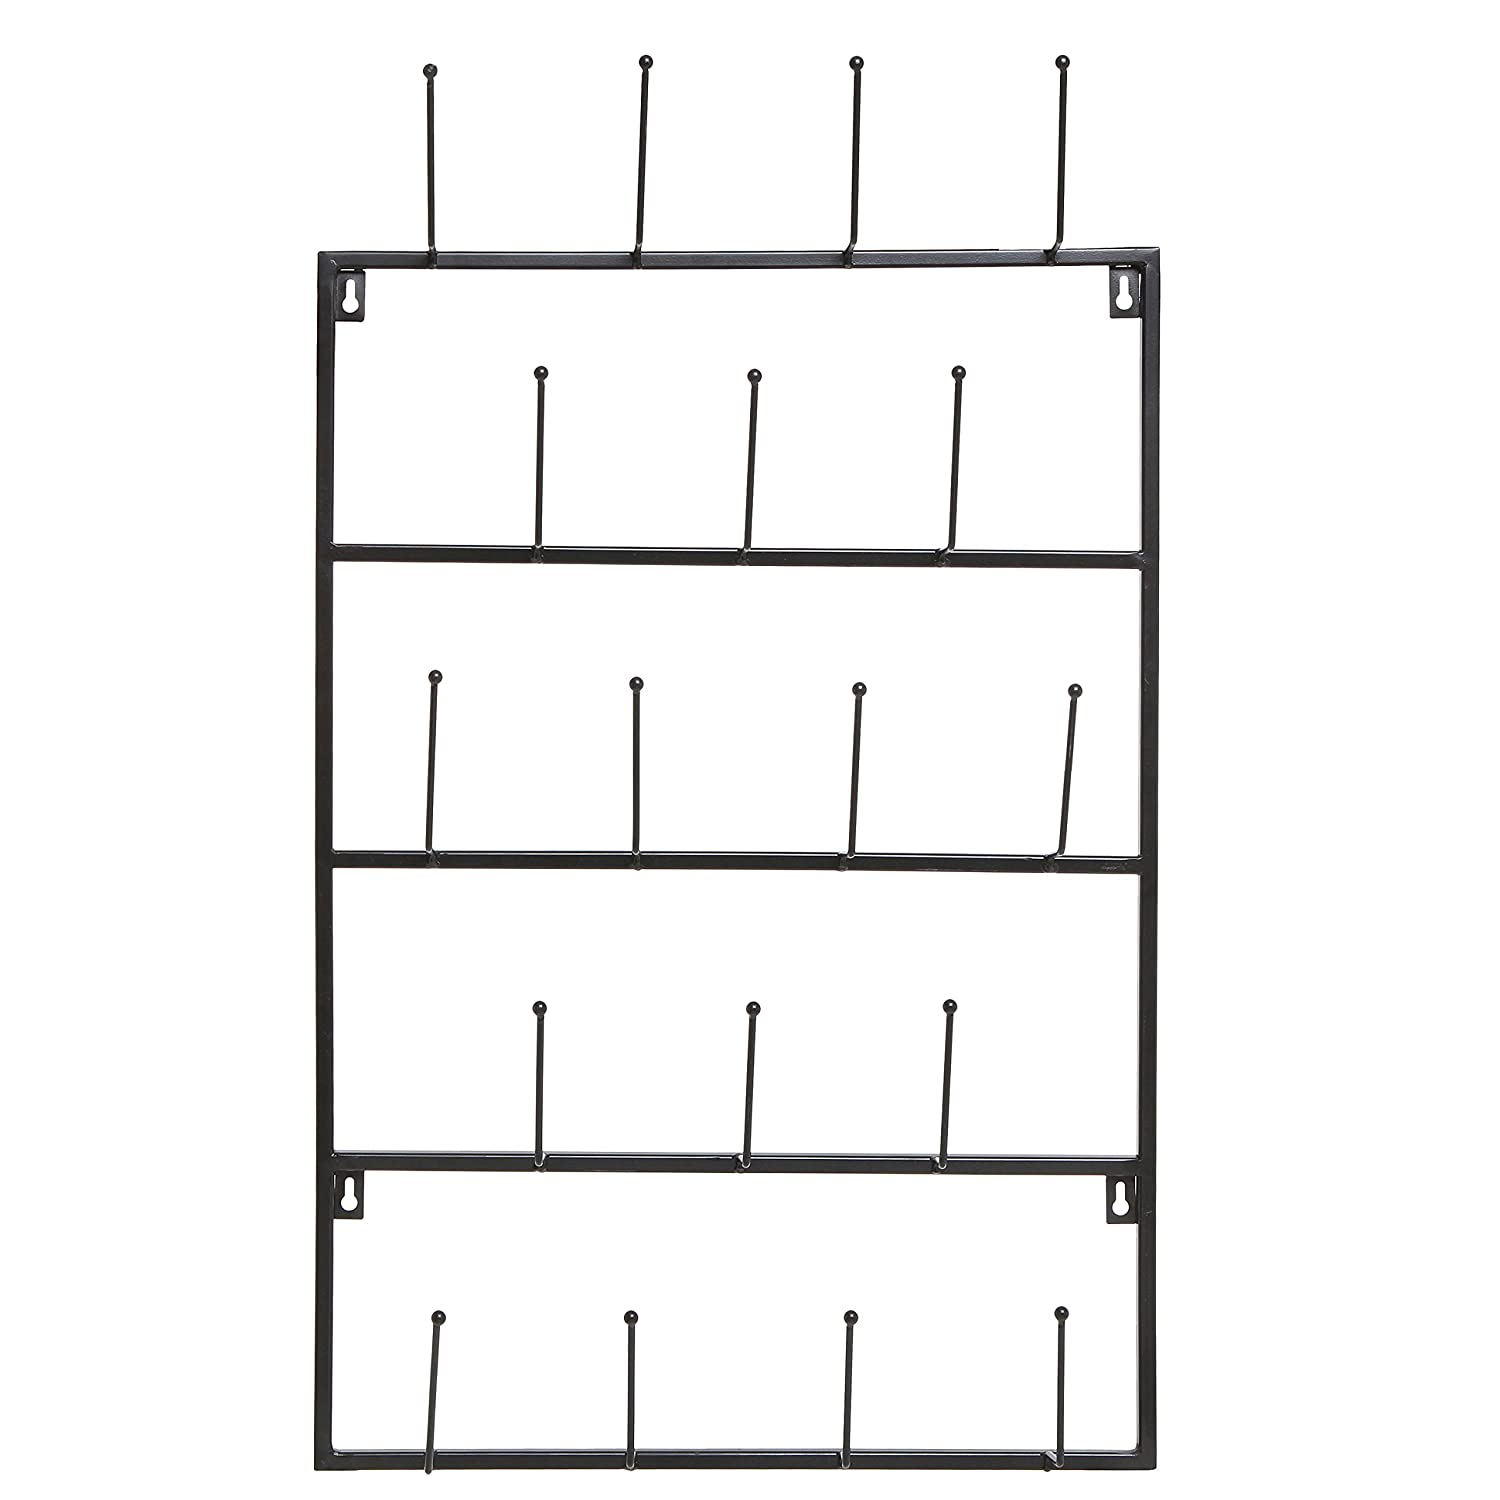 Farmhouse kitchen decor idea: black metal wall mounted rack for mugs!